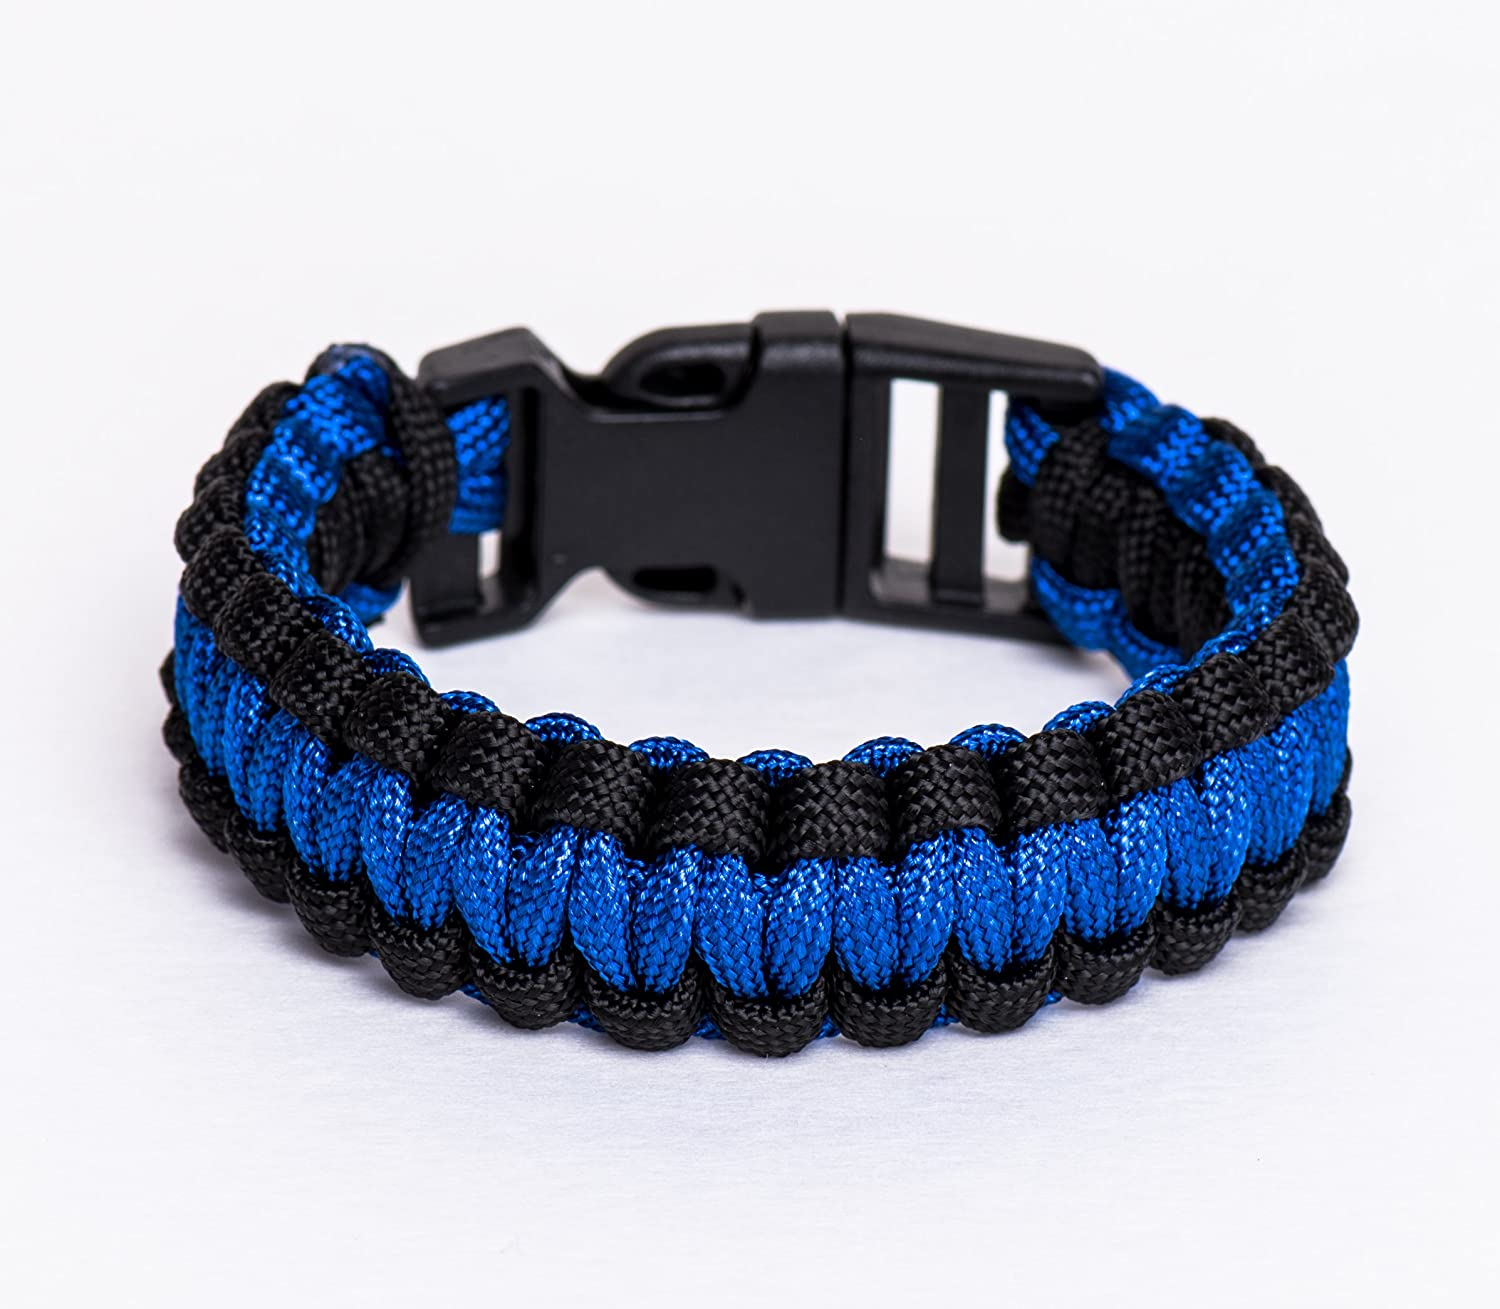 Thin Blue Line Usa Flag Police Paracord Bracelet Support Lives Thin Red Line Us America Flag Paracord Survival Armband Bangle Buckles & Hooks Arts,crafts & Sewing